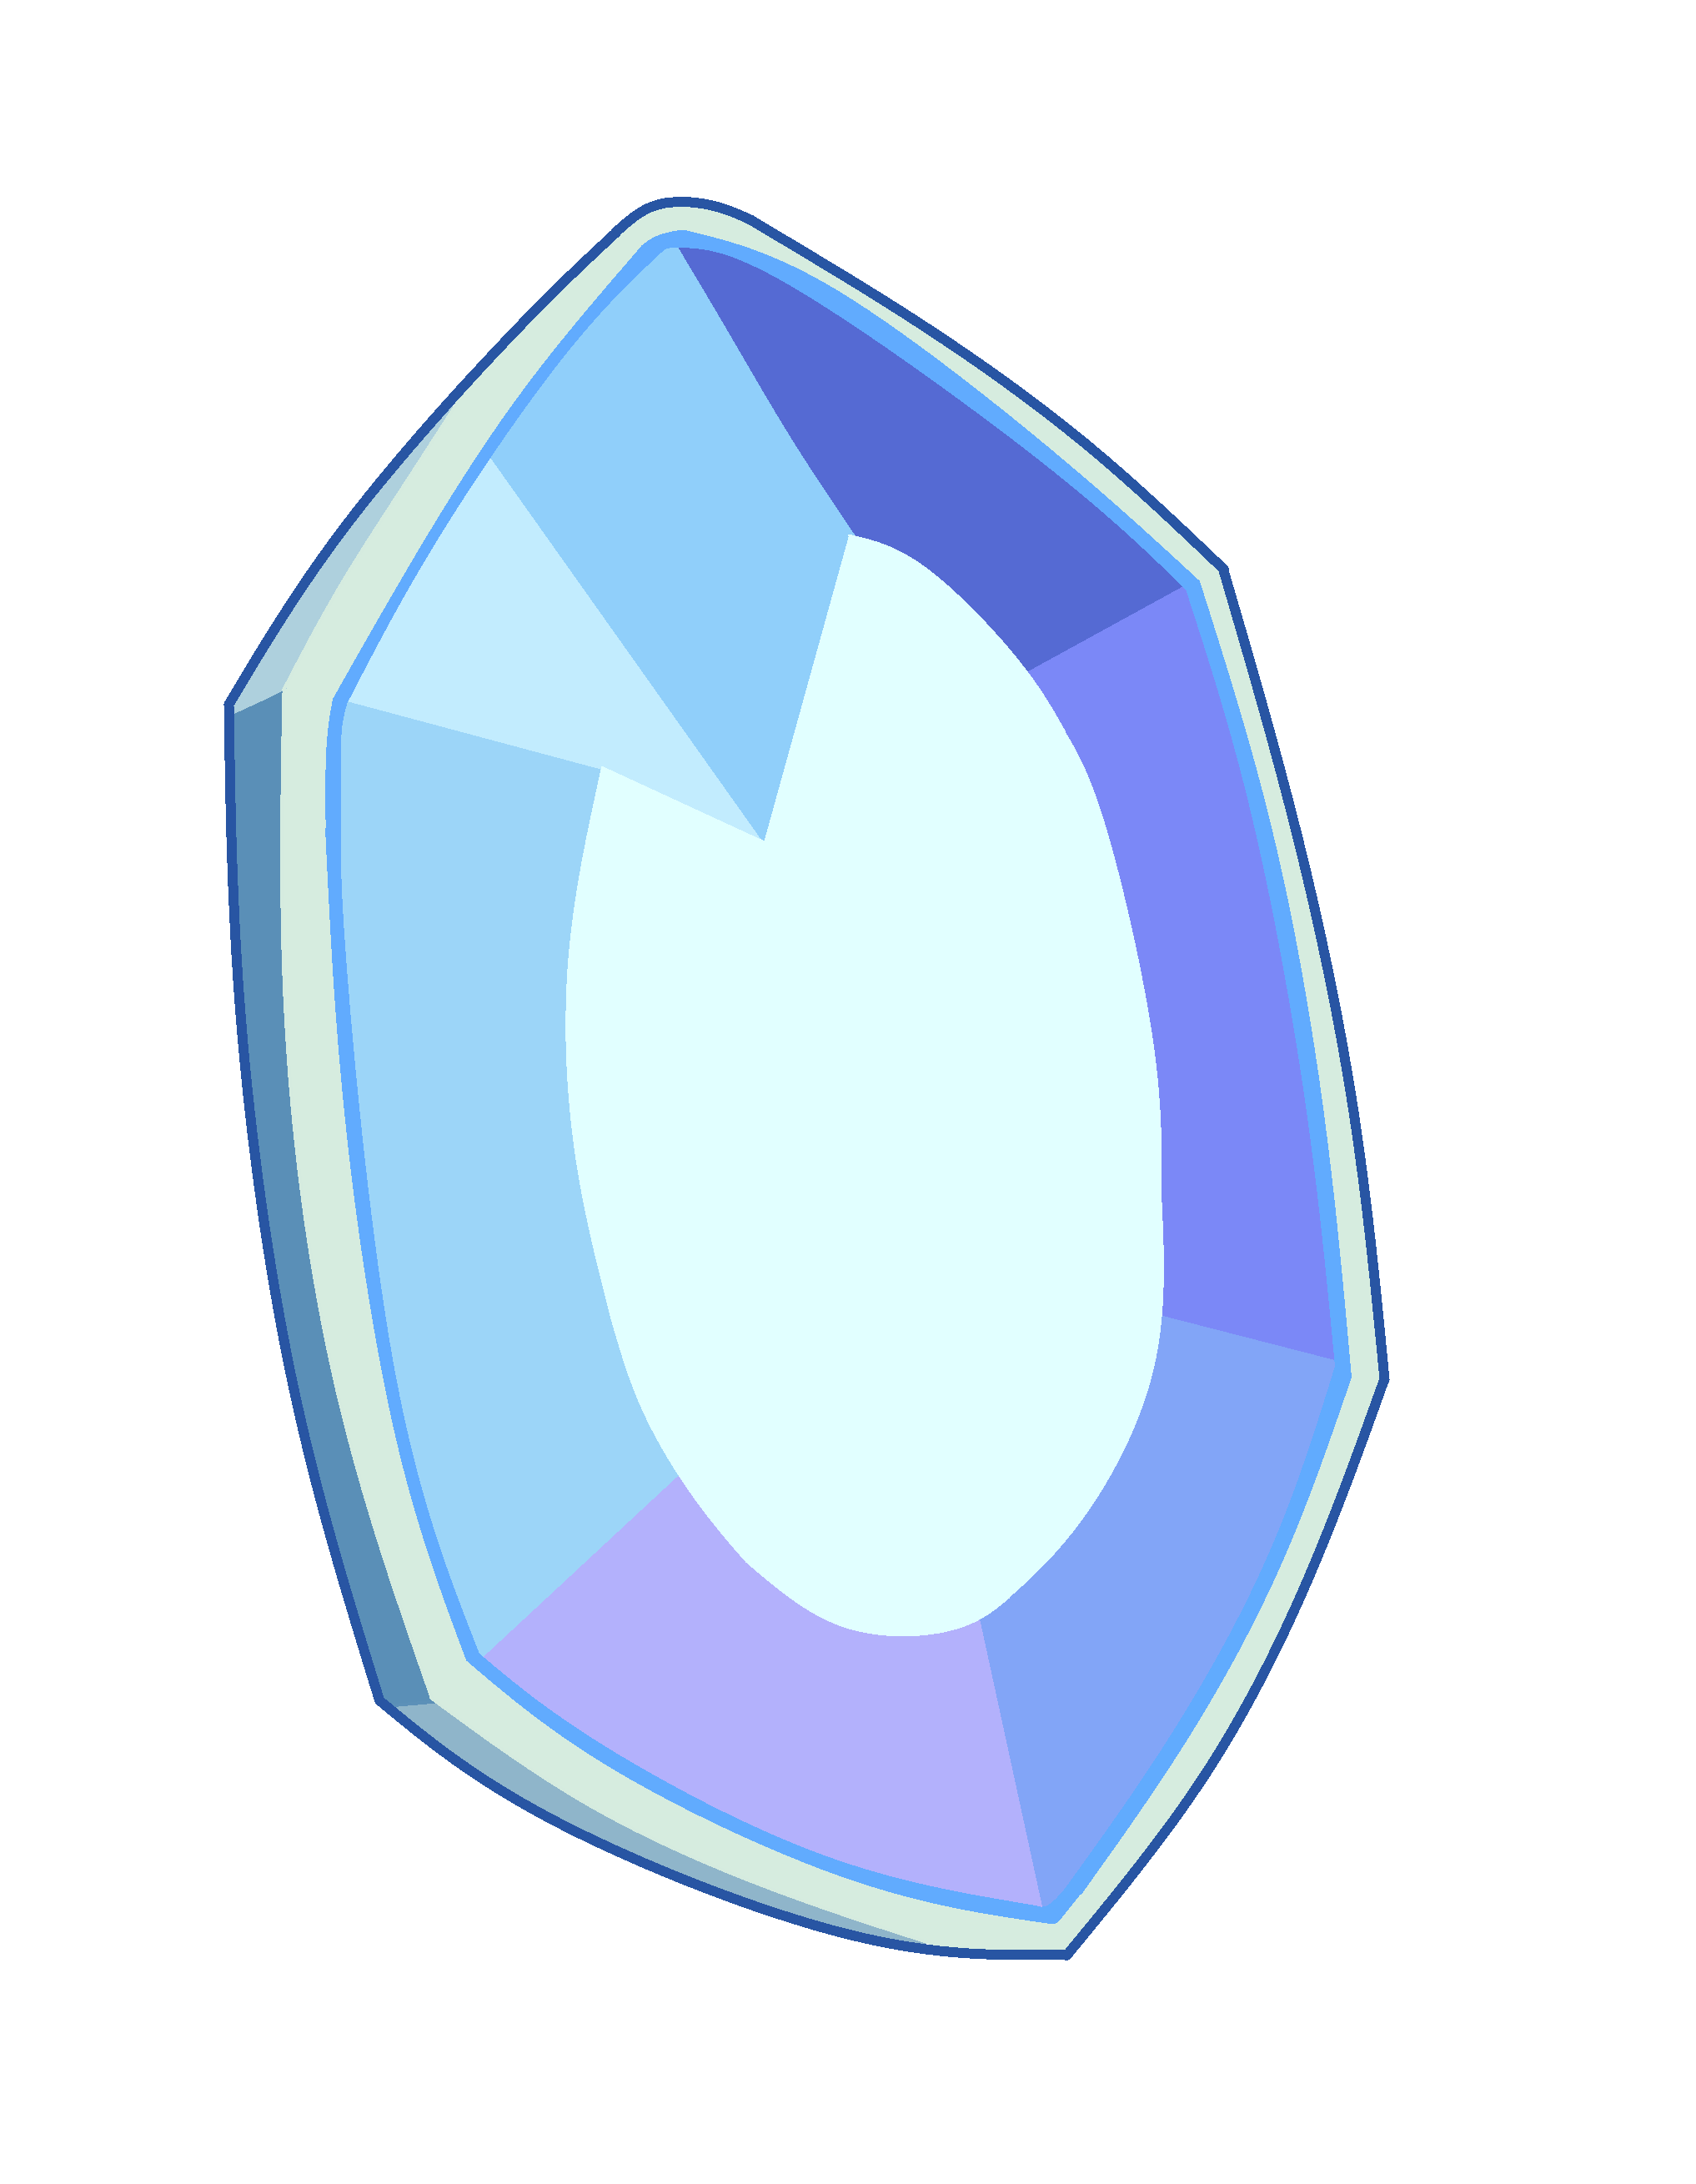 clip transparent stock Collection of free Transparent crack ice